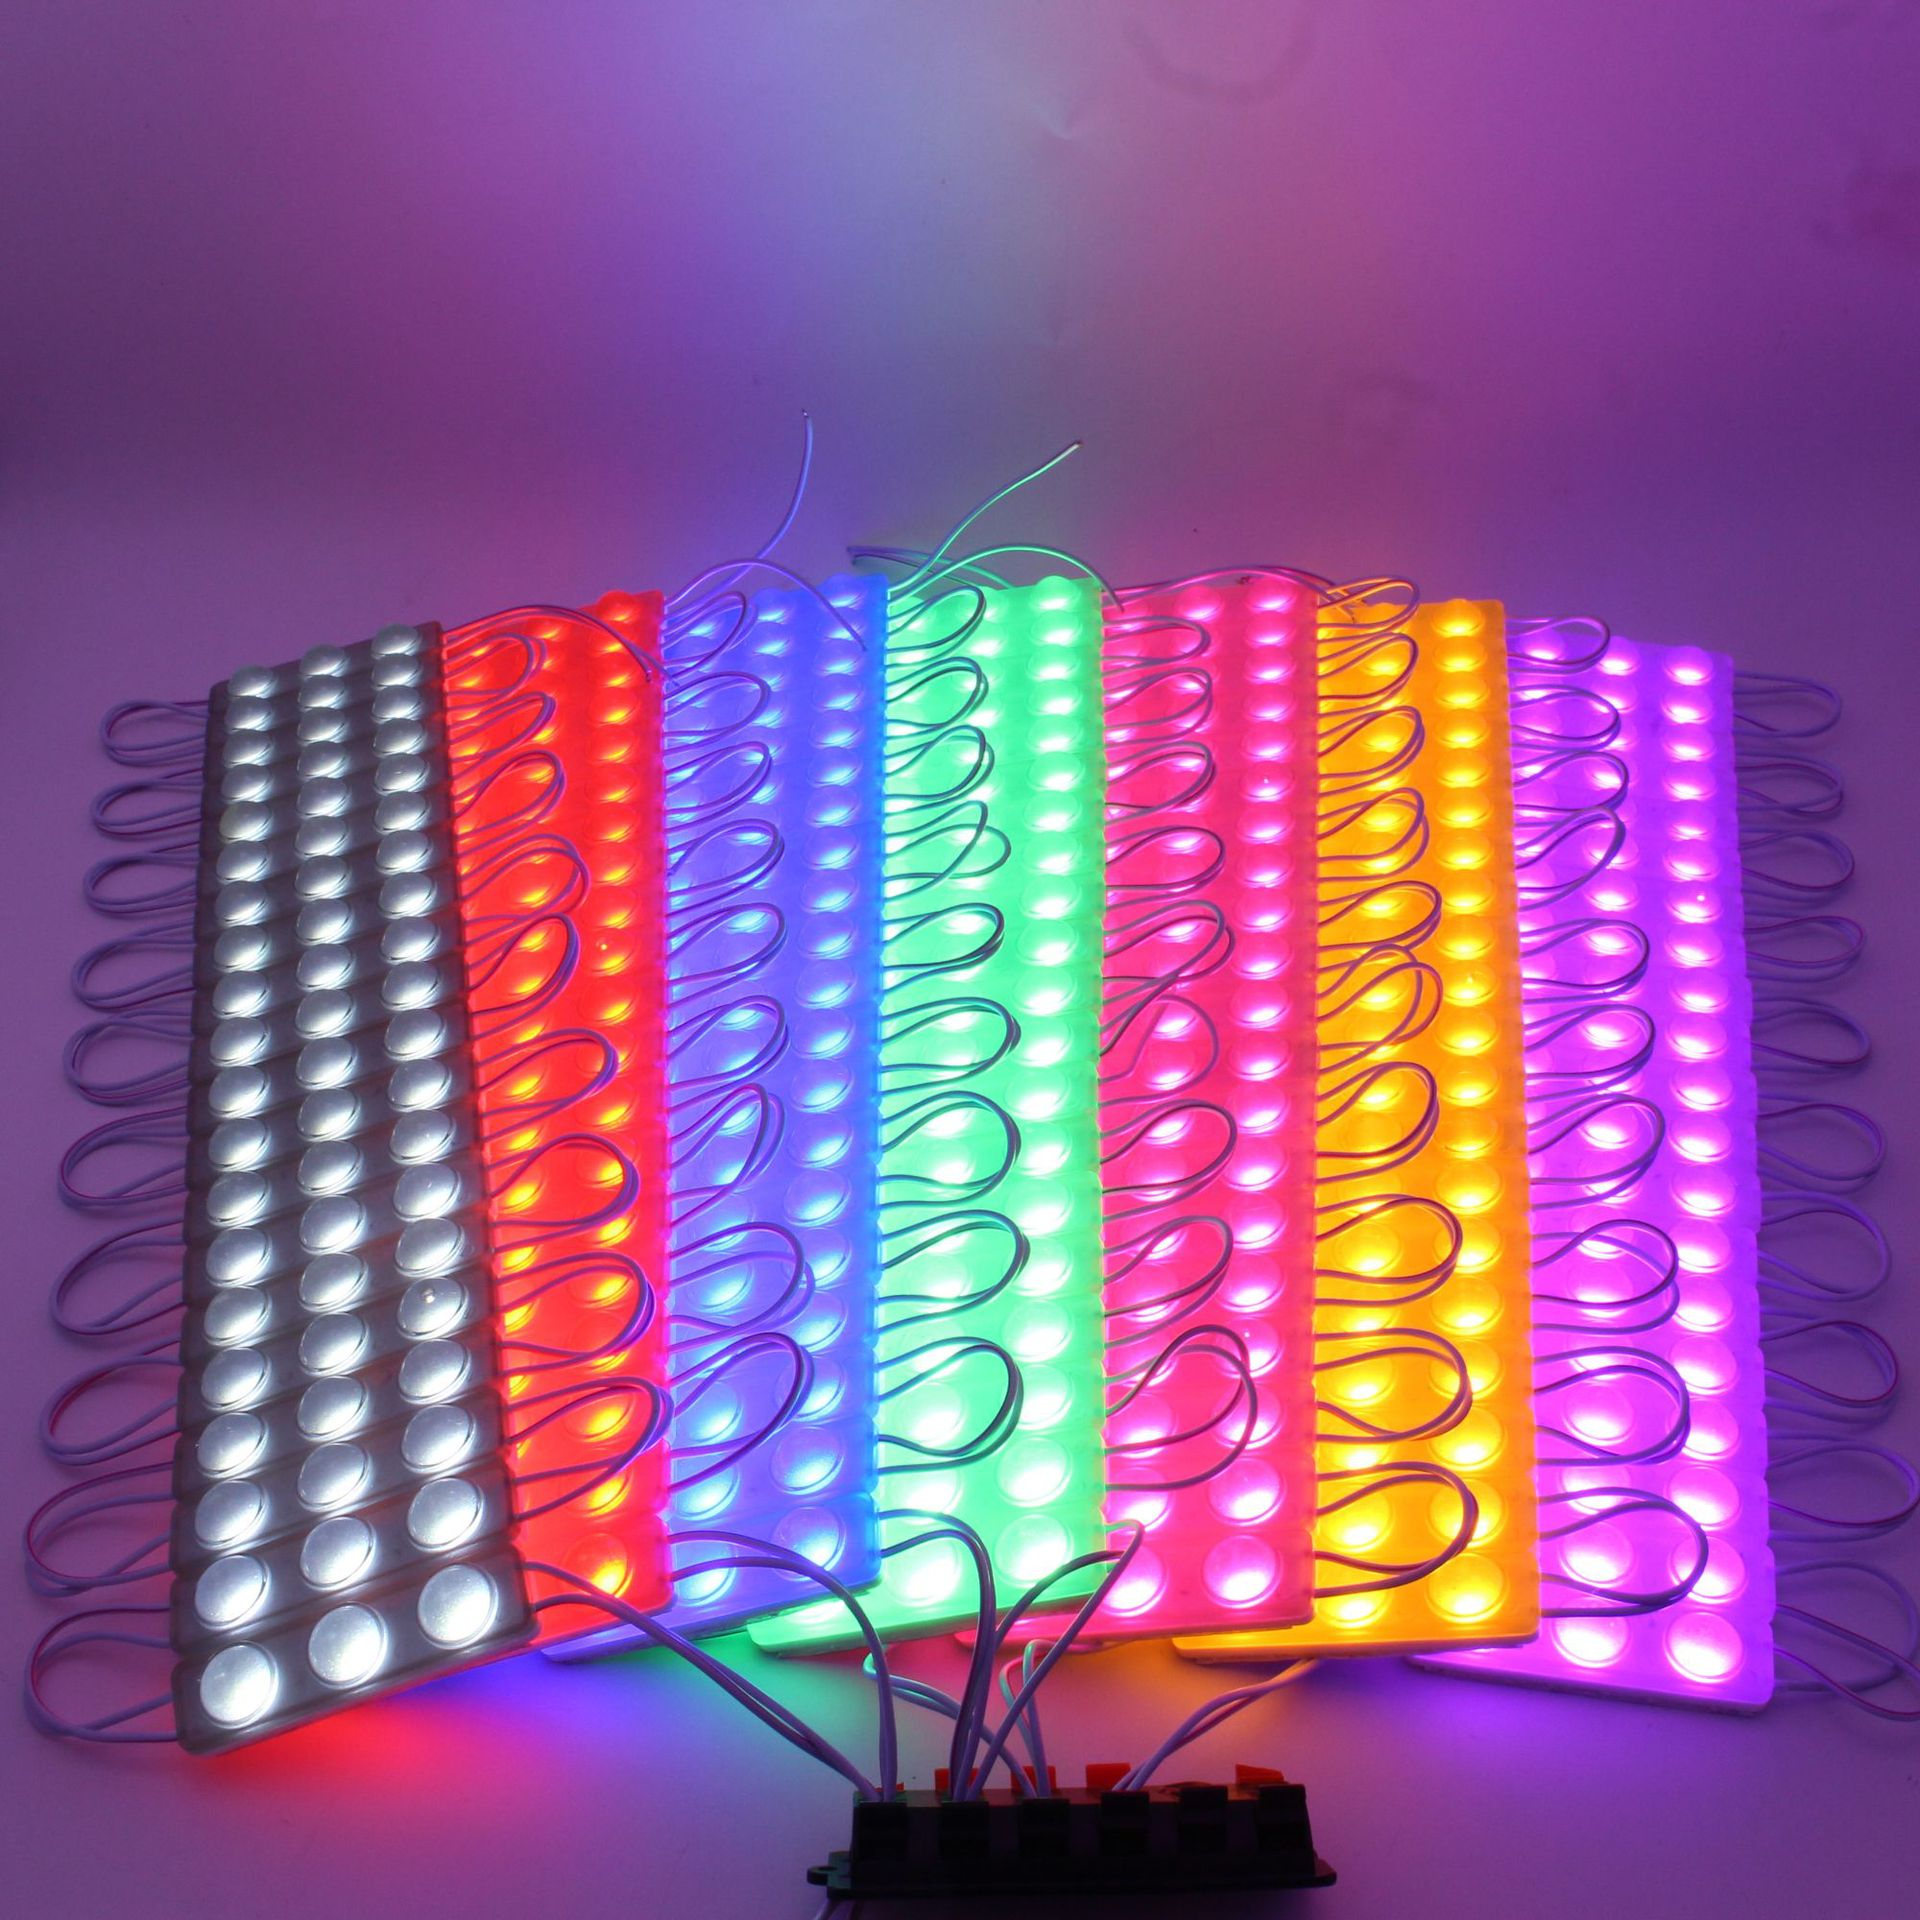 1000Pcs DC 12V IP65 Waterproof Slim LED Injection Module 2835 RGB Self-flashing With Lens Blister Luminous Characters enlarge